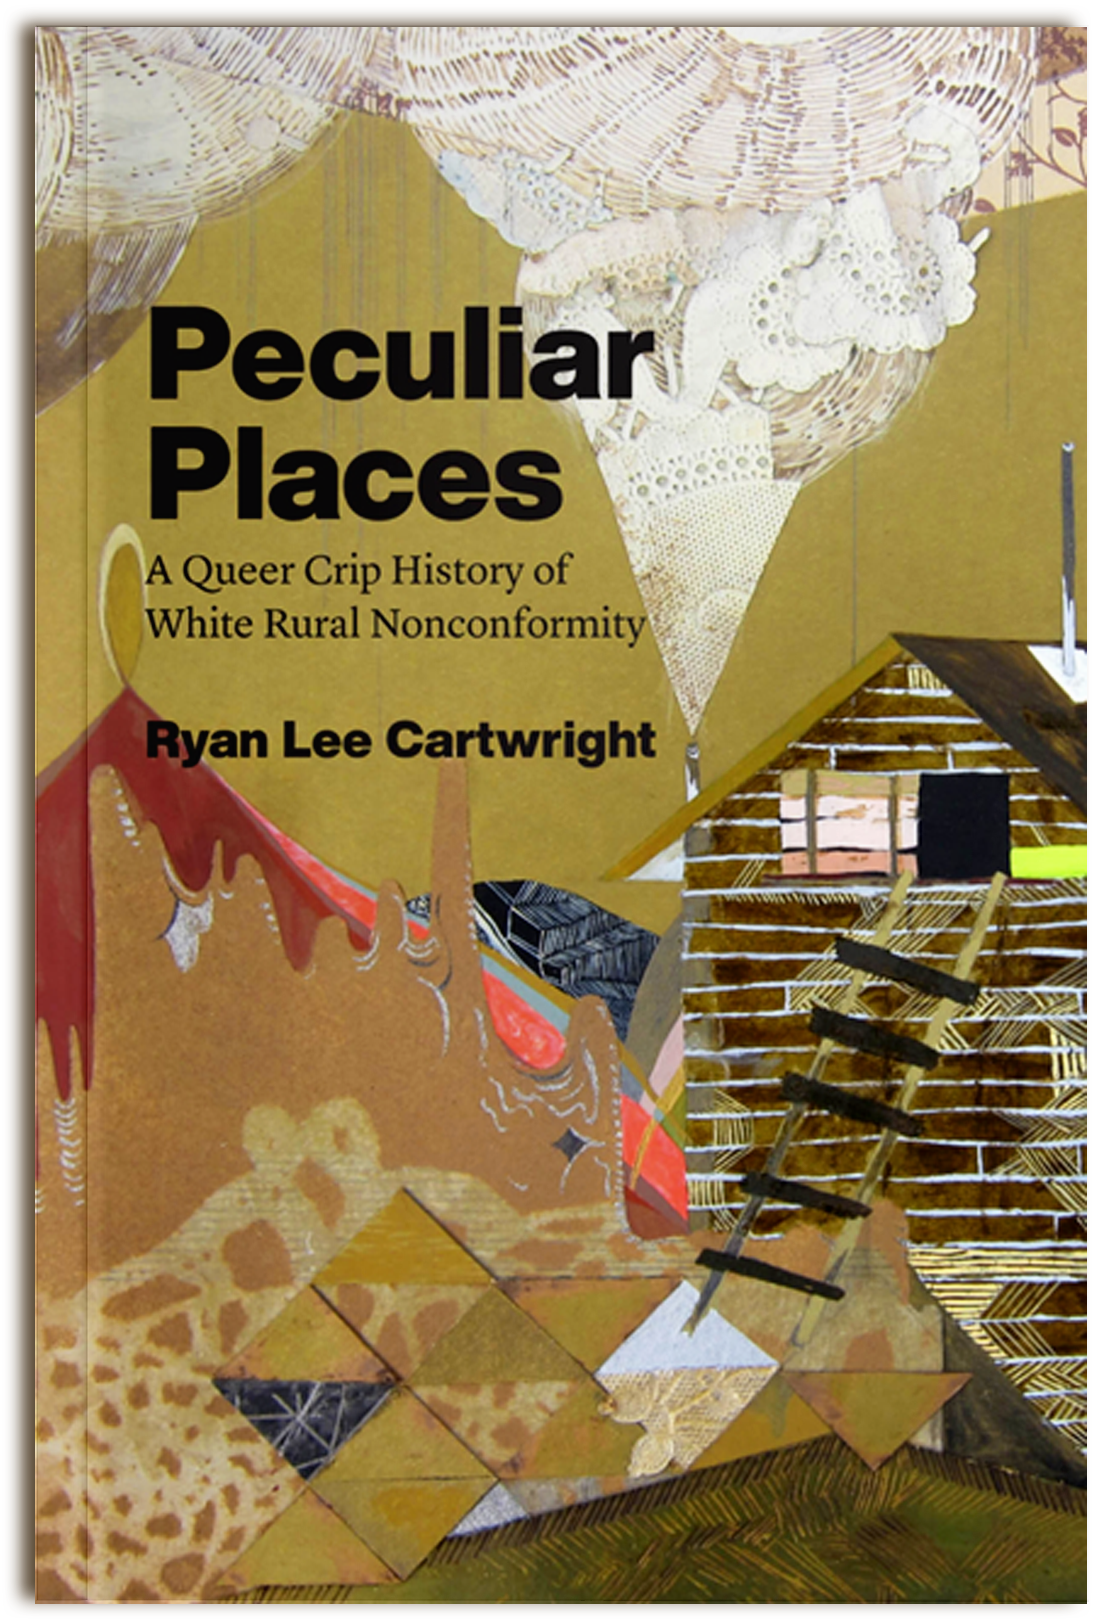 Book cover of Peculiar Places by Ryan Lee Cartwright